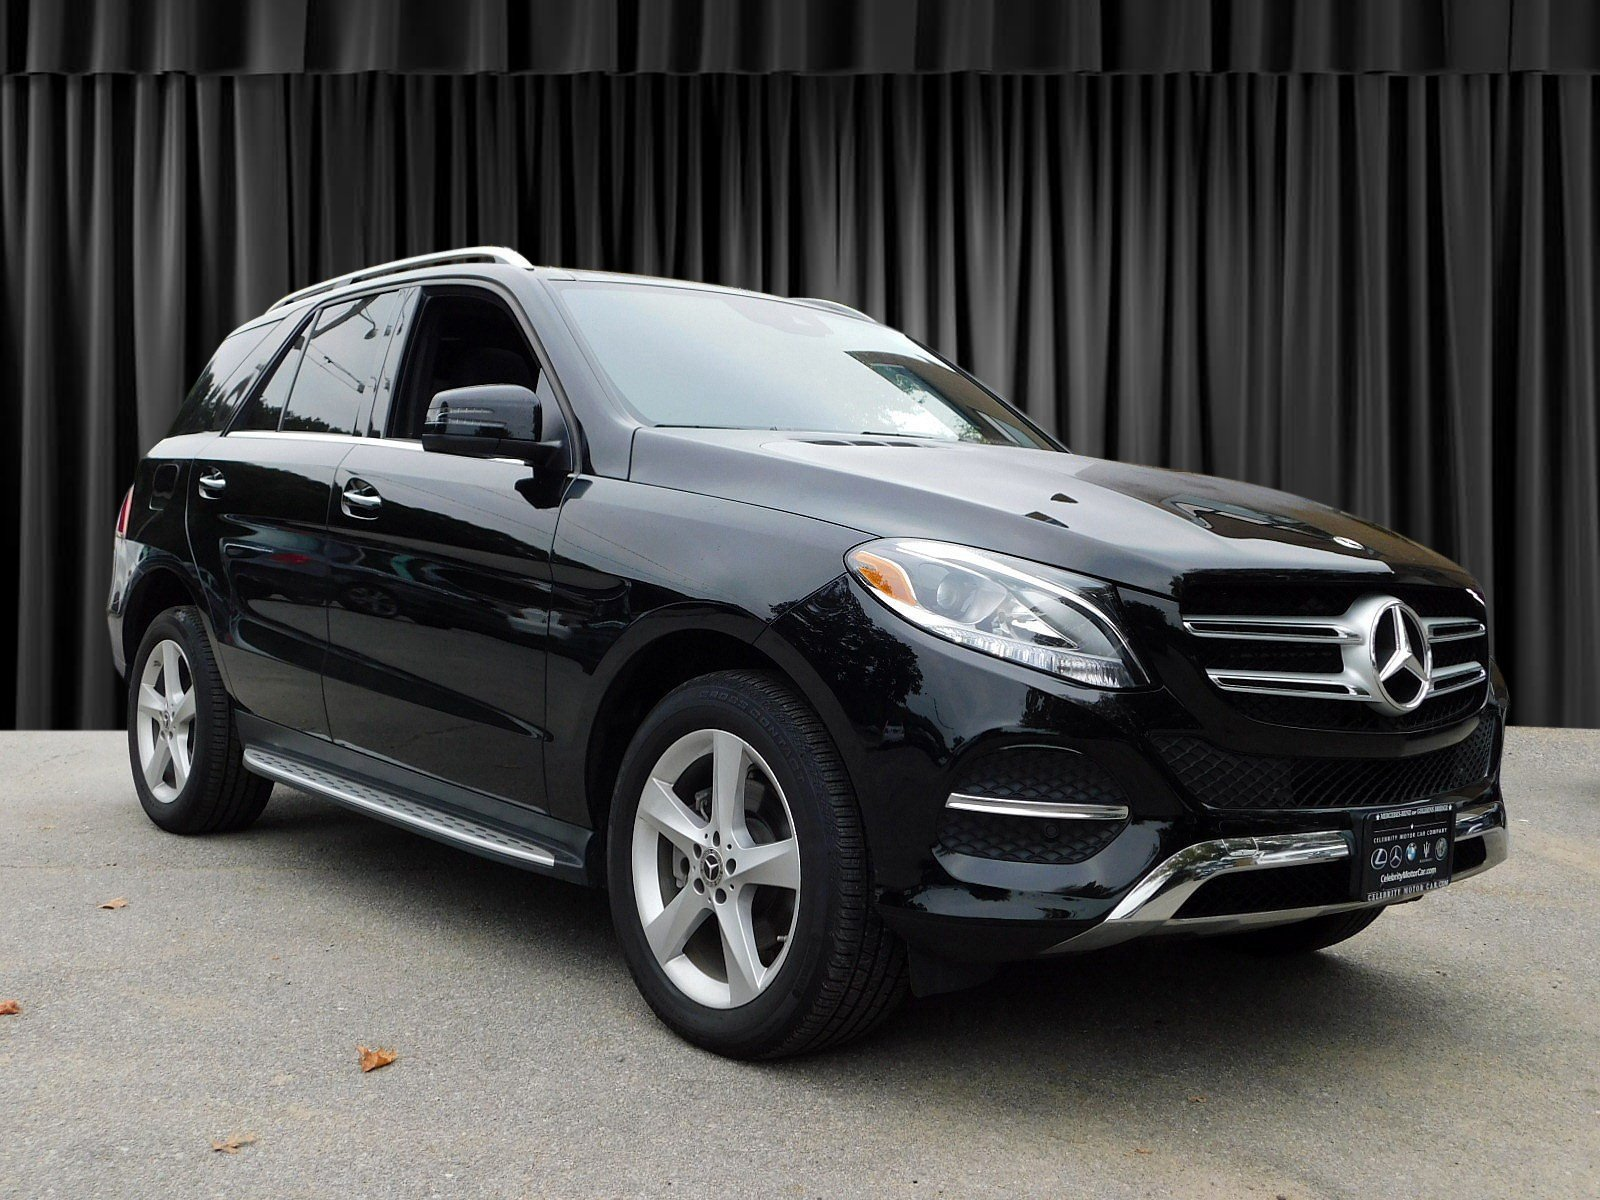 Pre Owned 2018 Mercedes Benz GLE GLE 350 SUV in Goldens Bridge